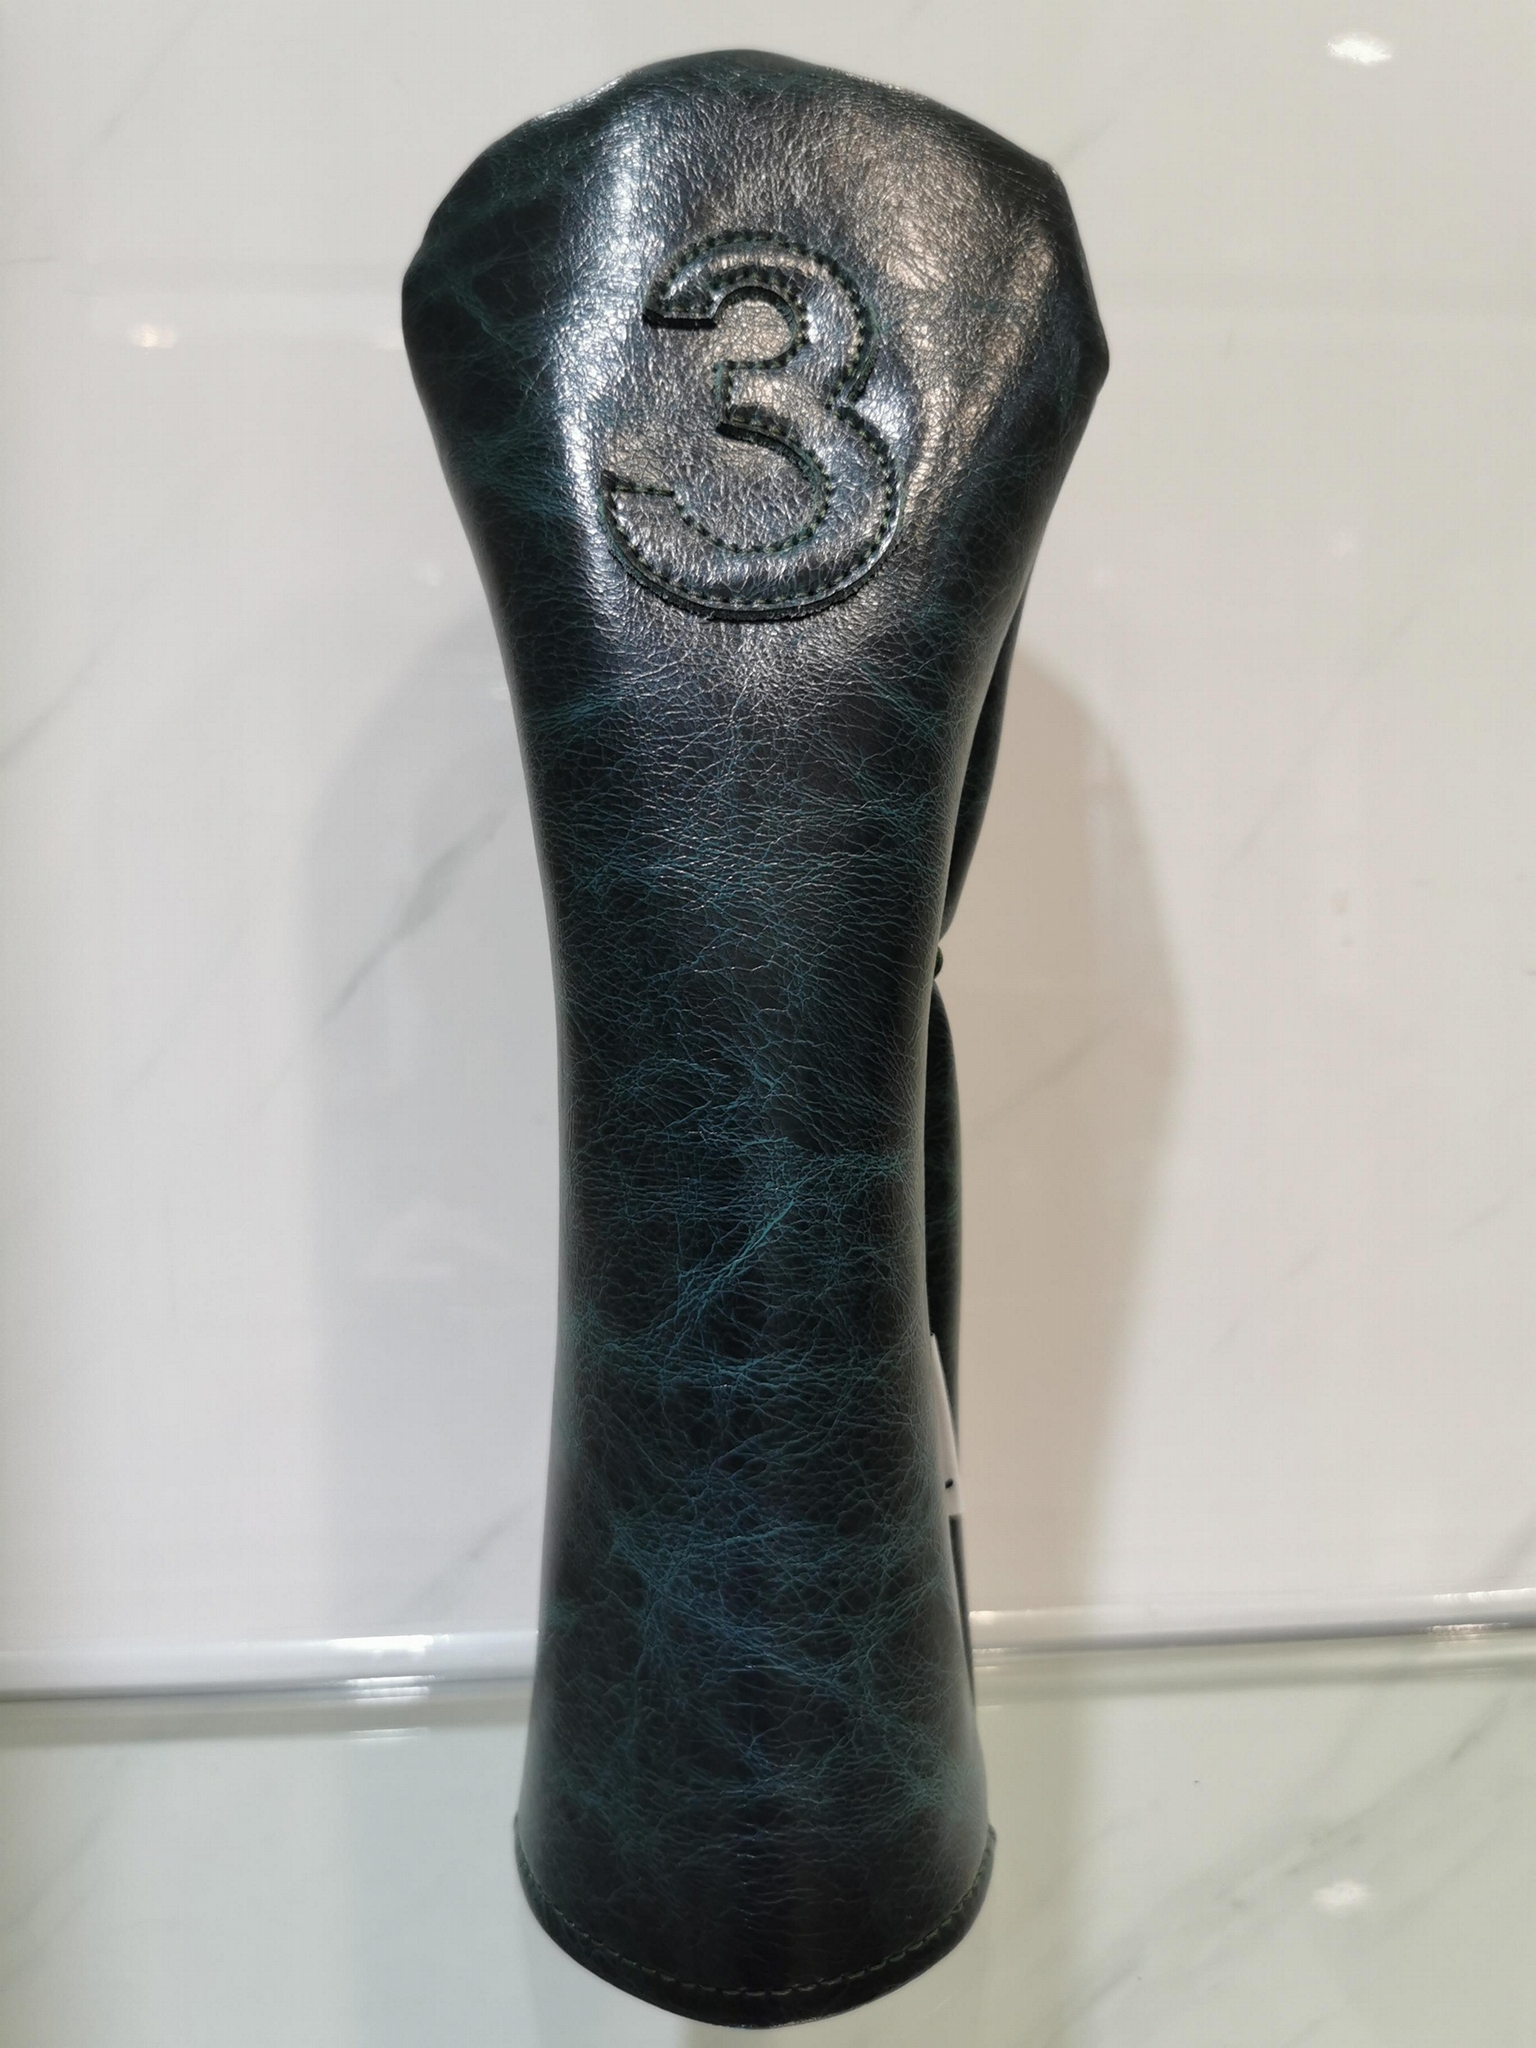 genuine leather golf fairway wood headcovers with wholesale price 1